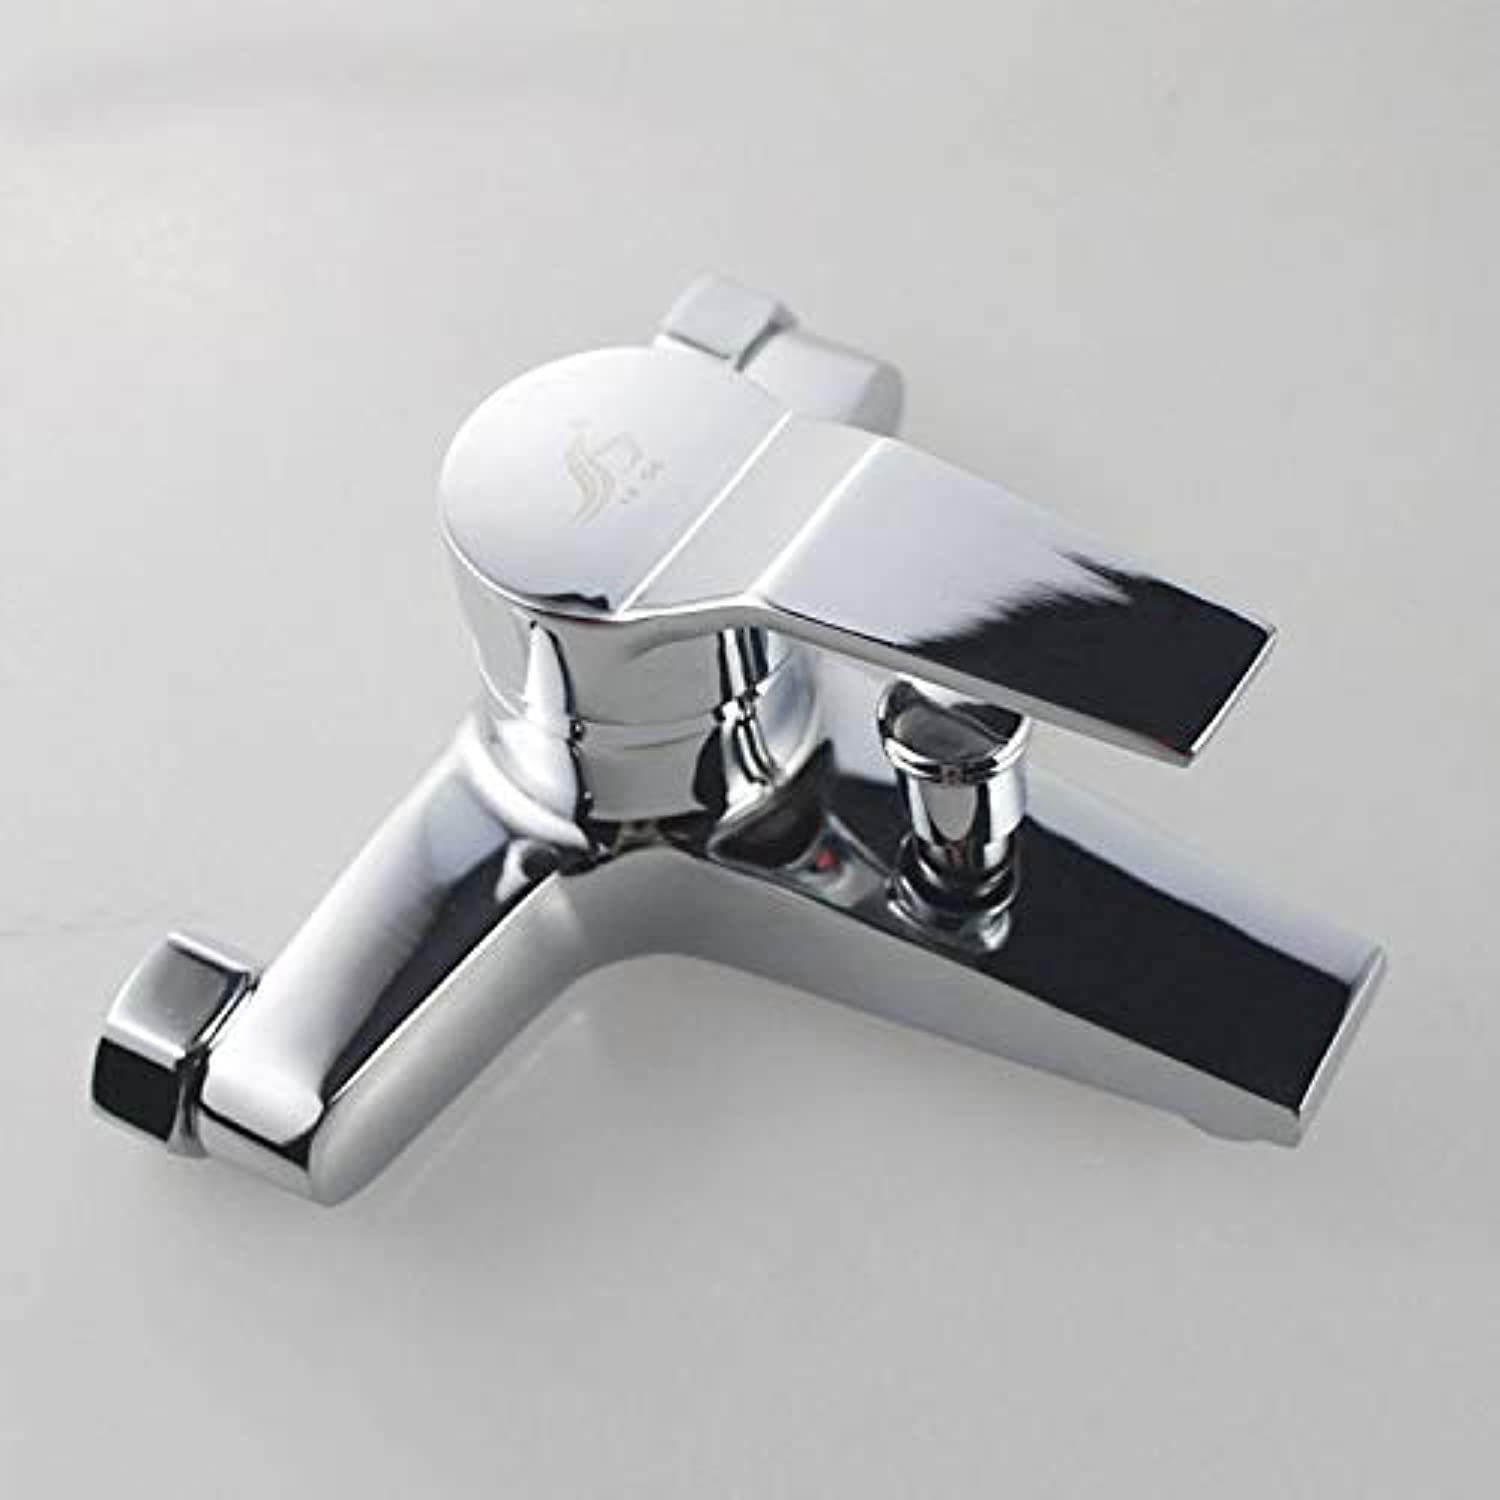 CFHJN HOME Taps Zinc Alloy Shower Faucet???Concealed Mixing Valve Bathtub Hot And Cold Shower Faucet